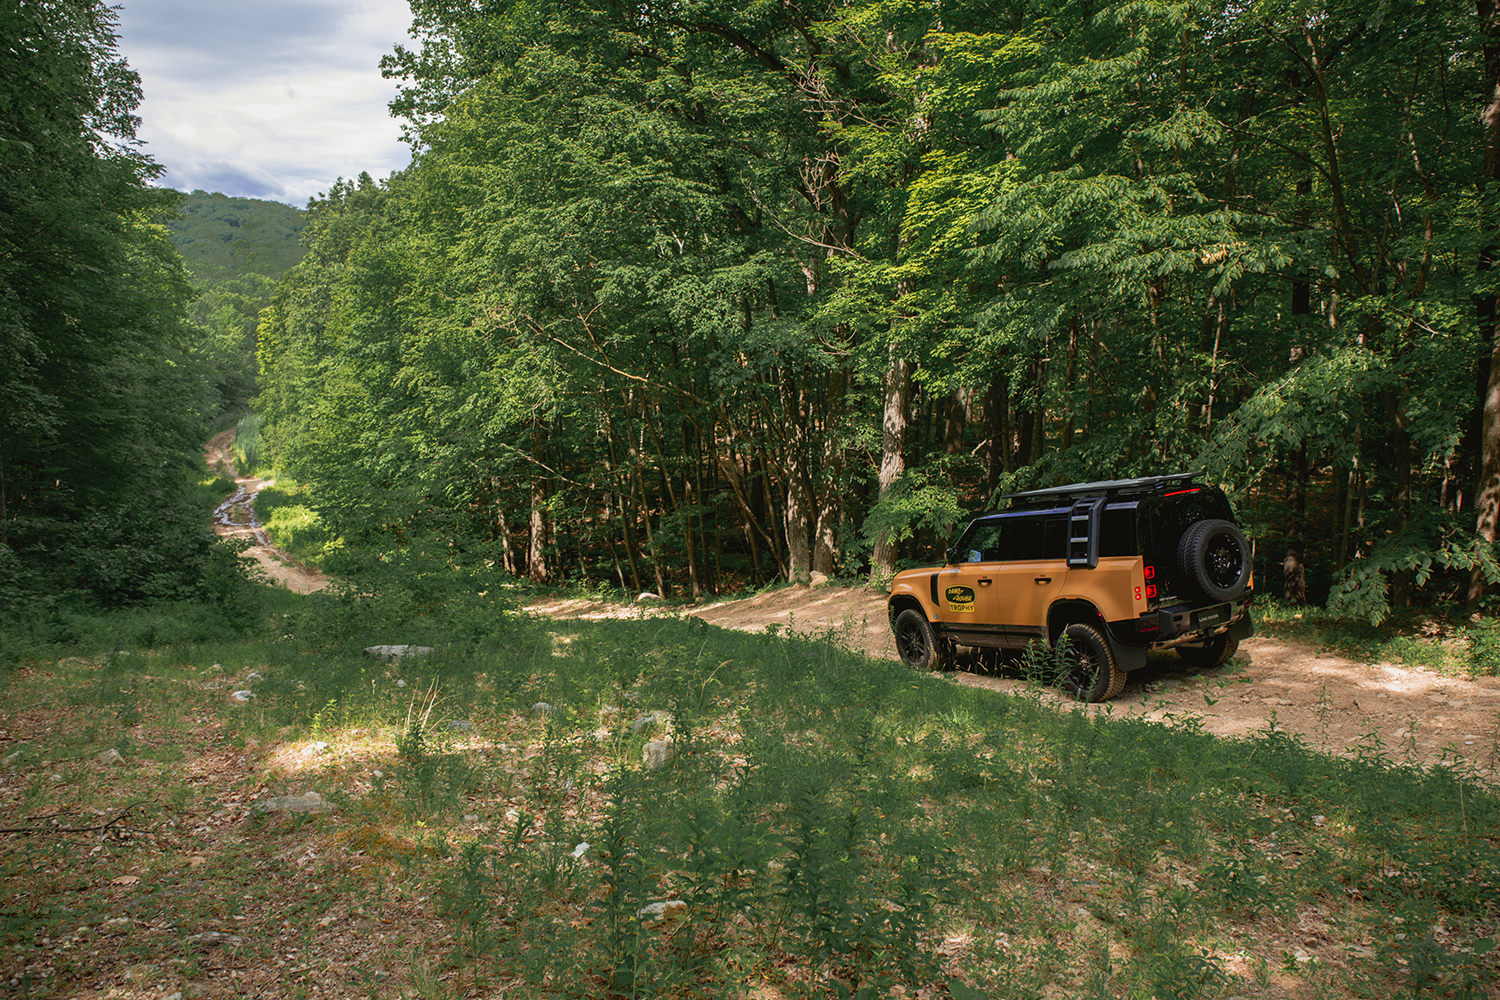 A Land Rover Defender Trophy Edition facing down an off-road trail, like one at the company's Biltmore Driving Center